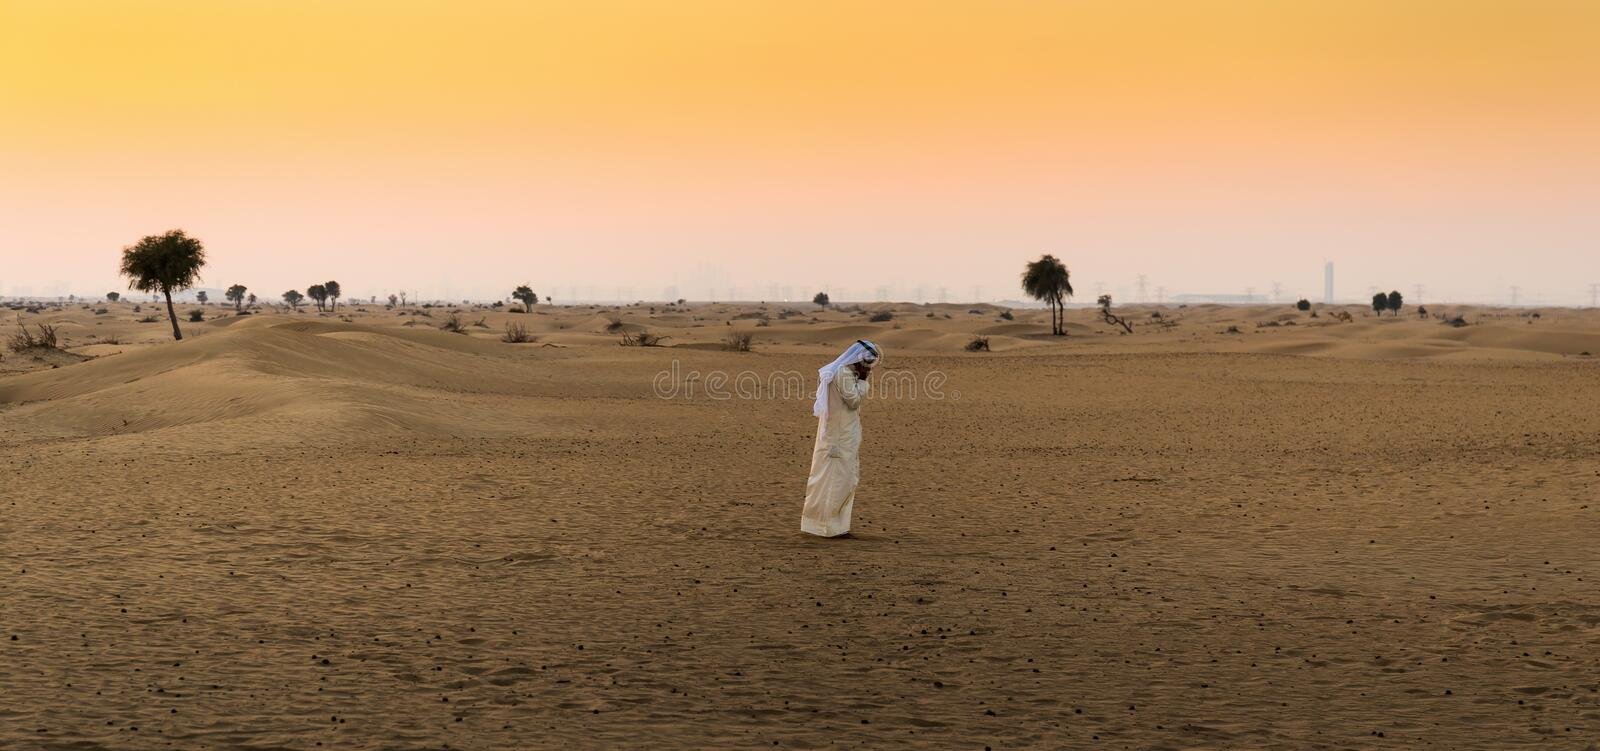 Arab man in the desert stock photo